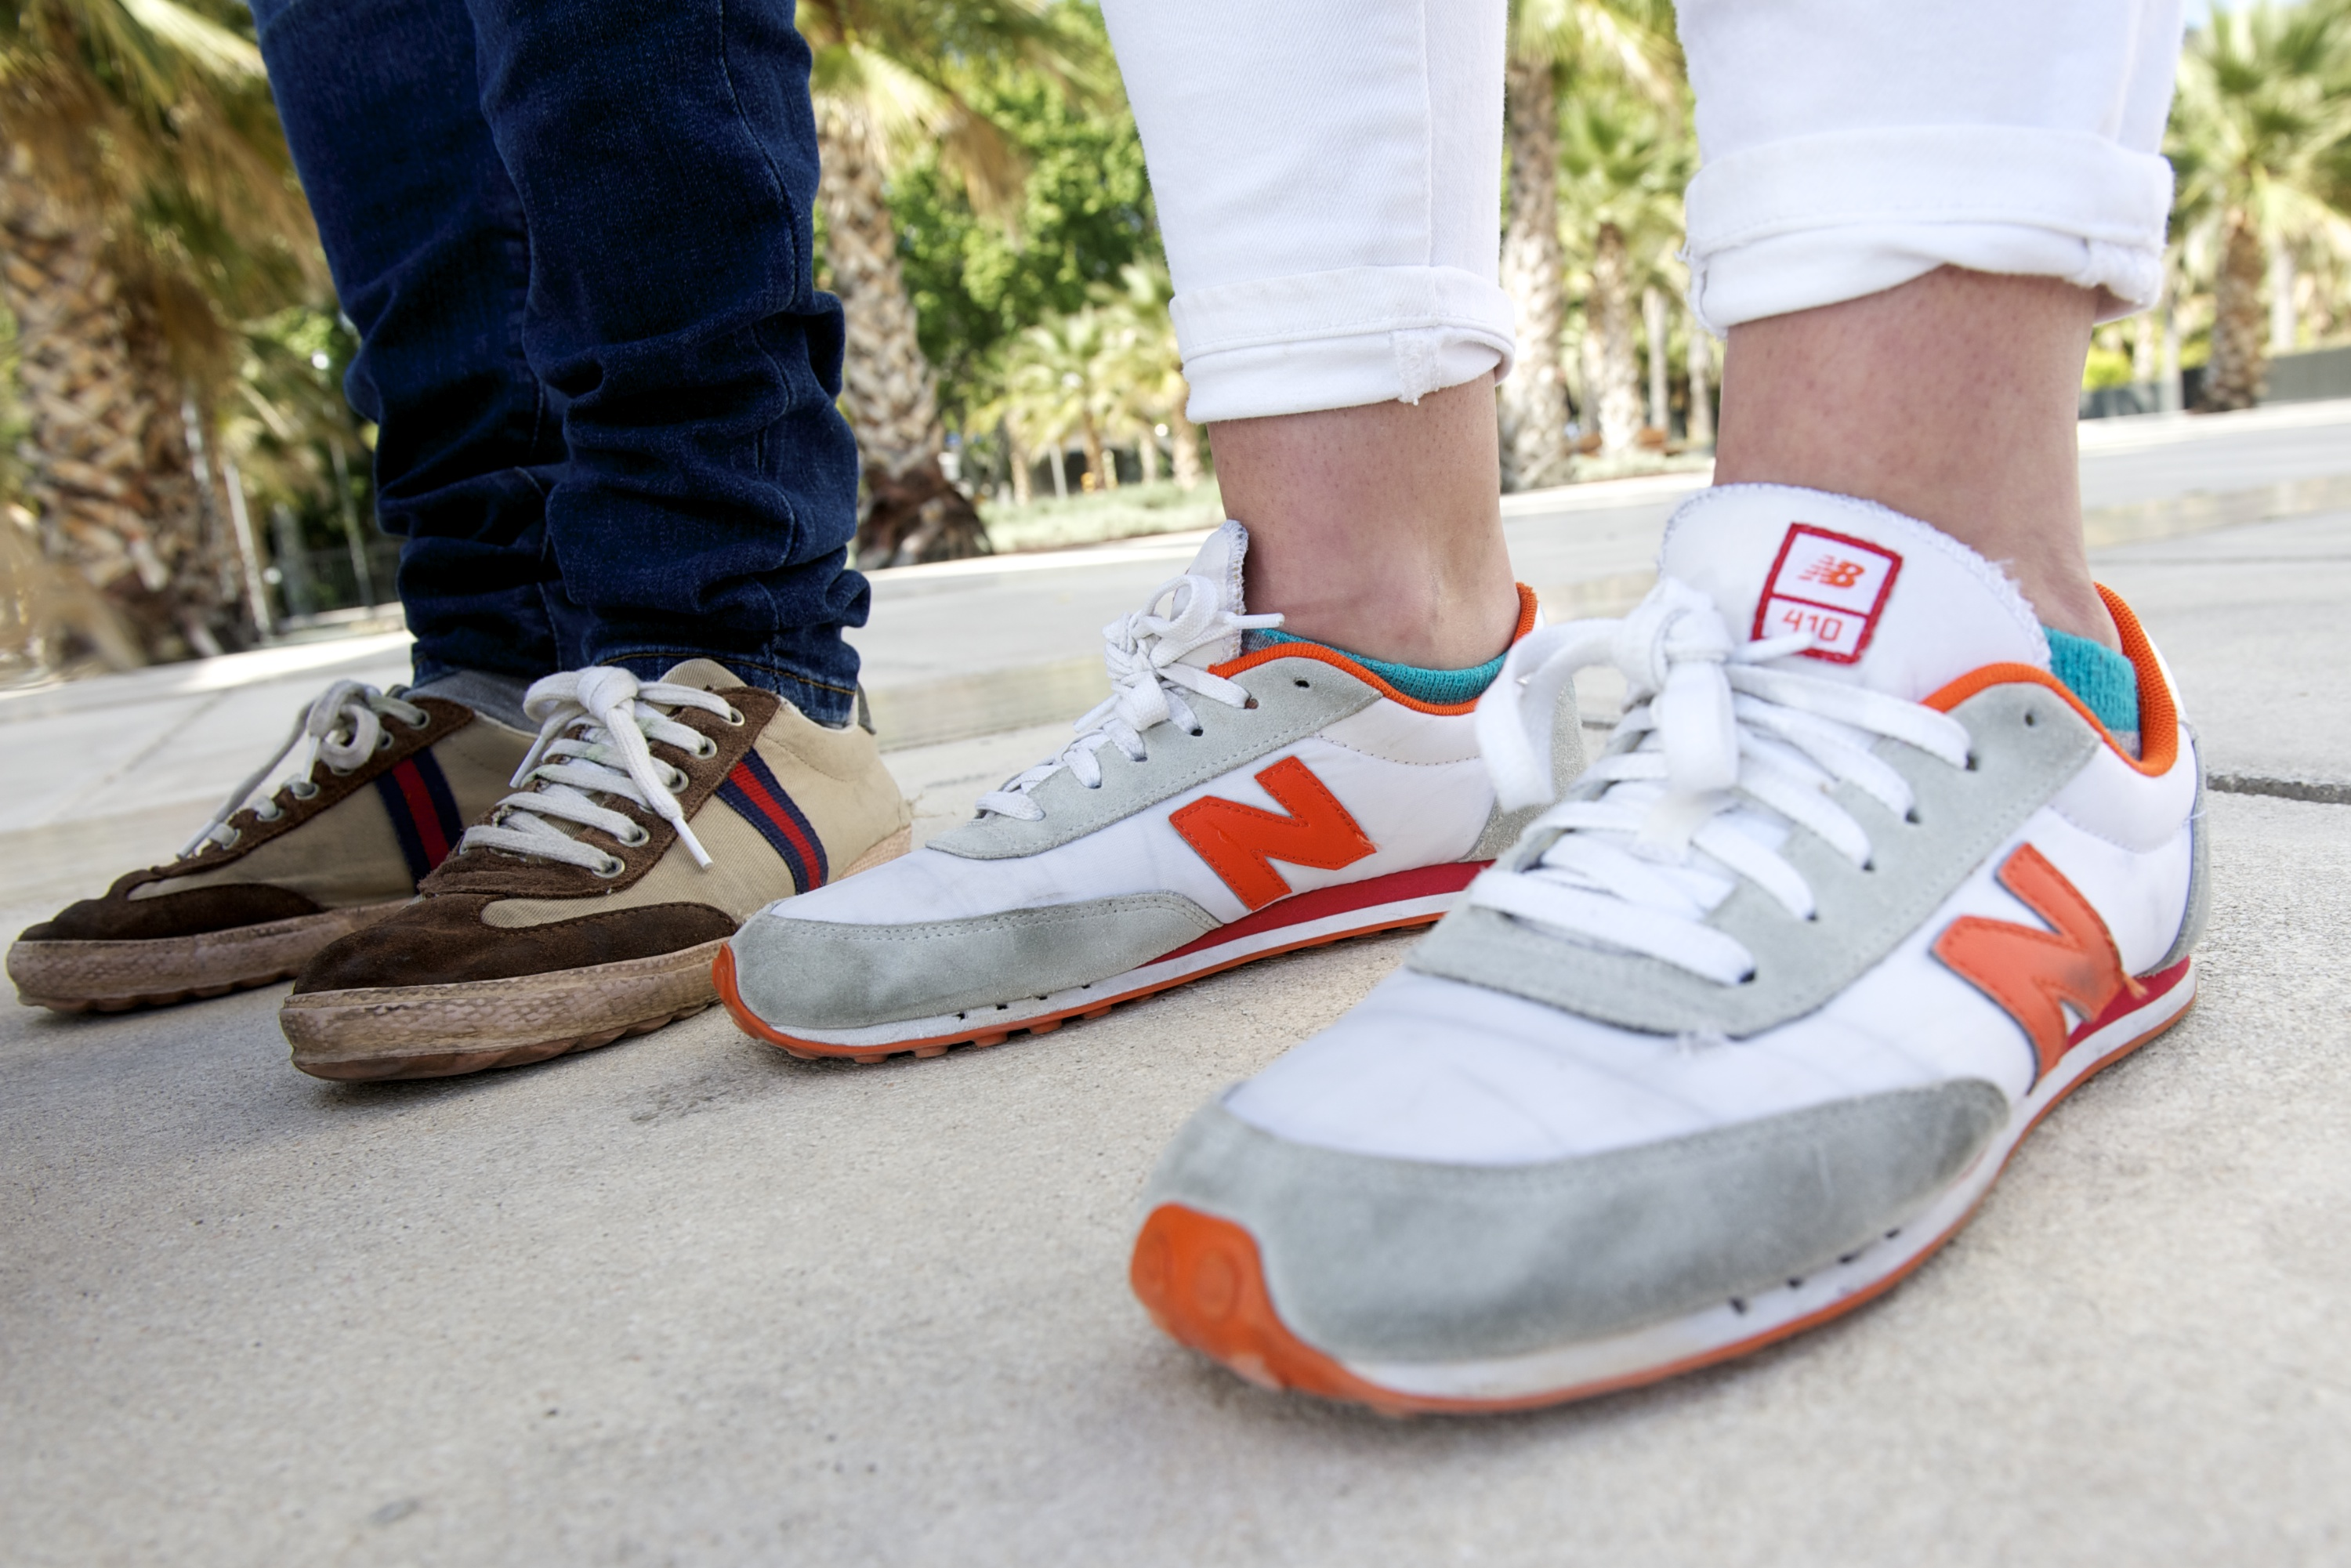 usted está Tibio judío  New Balance Sneakers Burned as Company Shows Support of Donald Trump |  Fortune